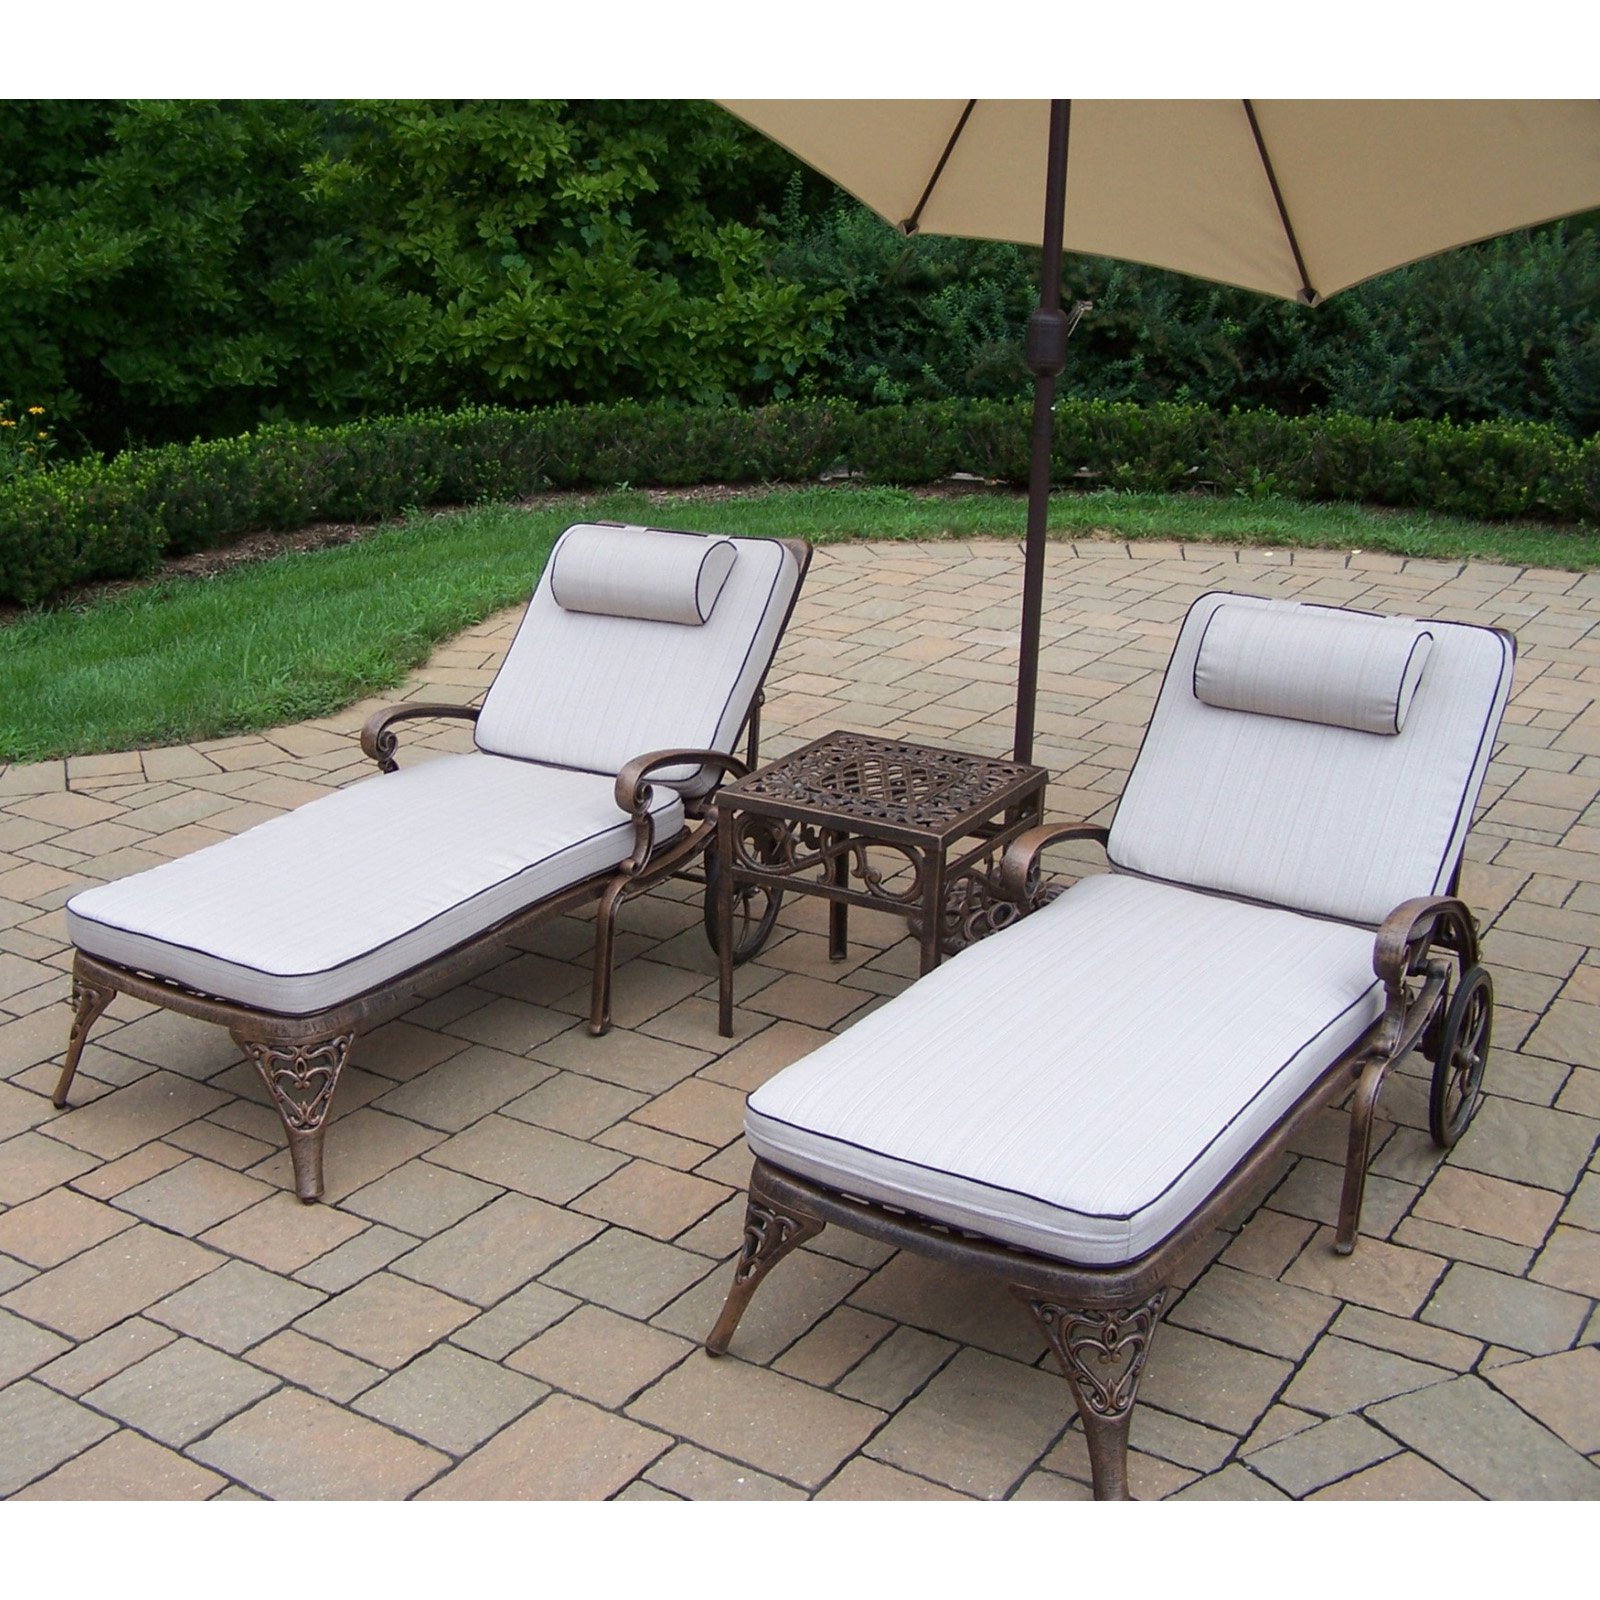 Oakland Living Mississippi Cast Aluminum Chaise Lounge Set with Tilting Umbrella and Stand